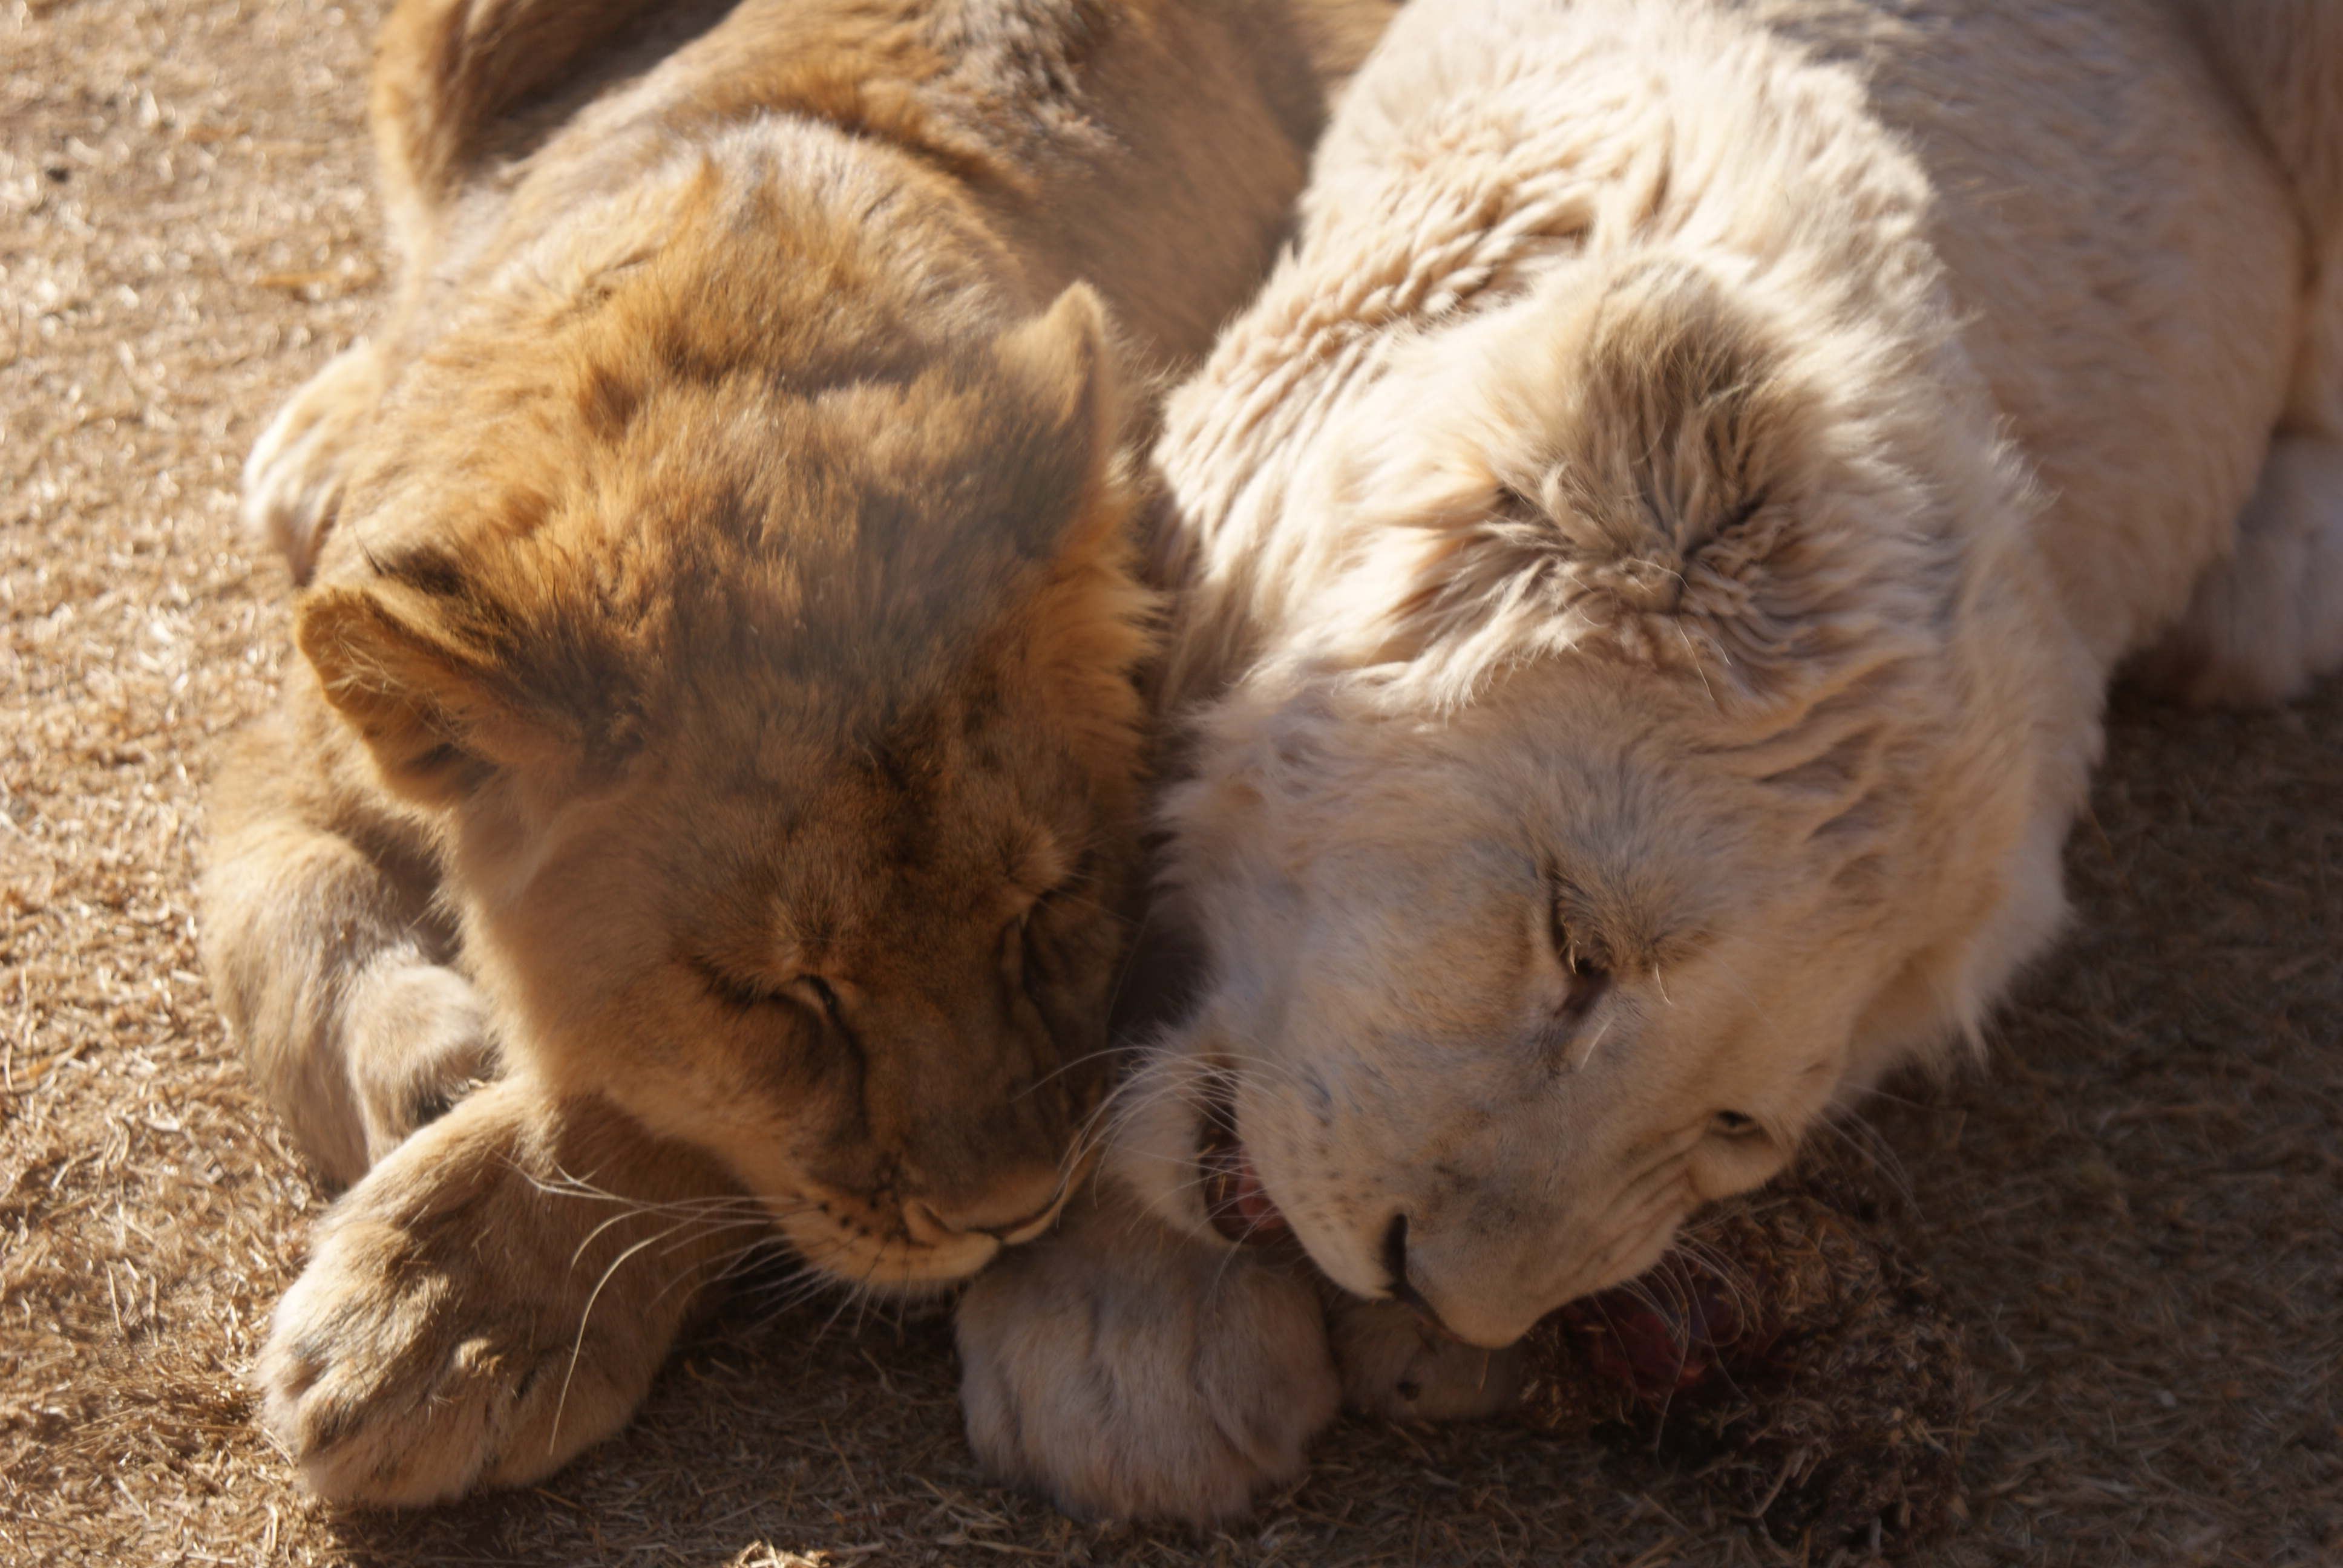 Cutest lion in the world - photo#4